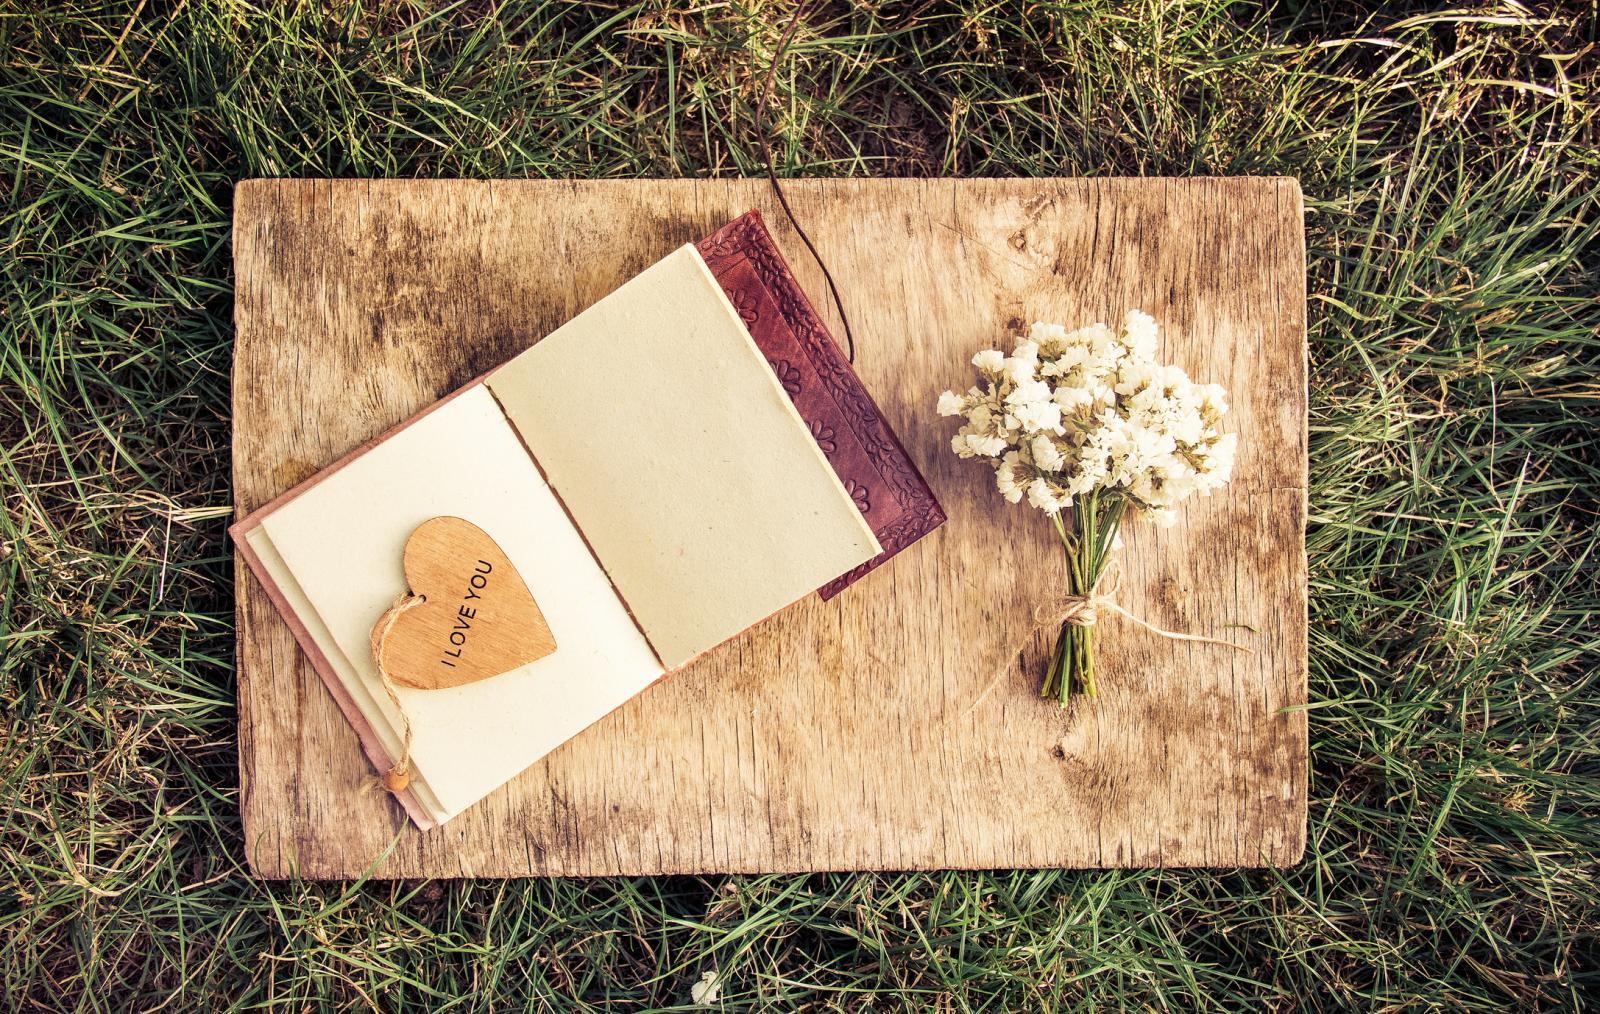 An open book with empty pages, a bouquet of white flowers and a wooden heart